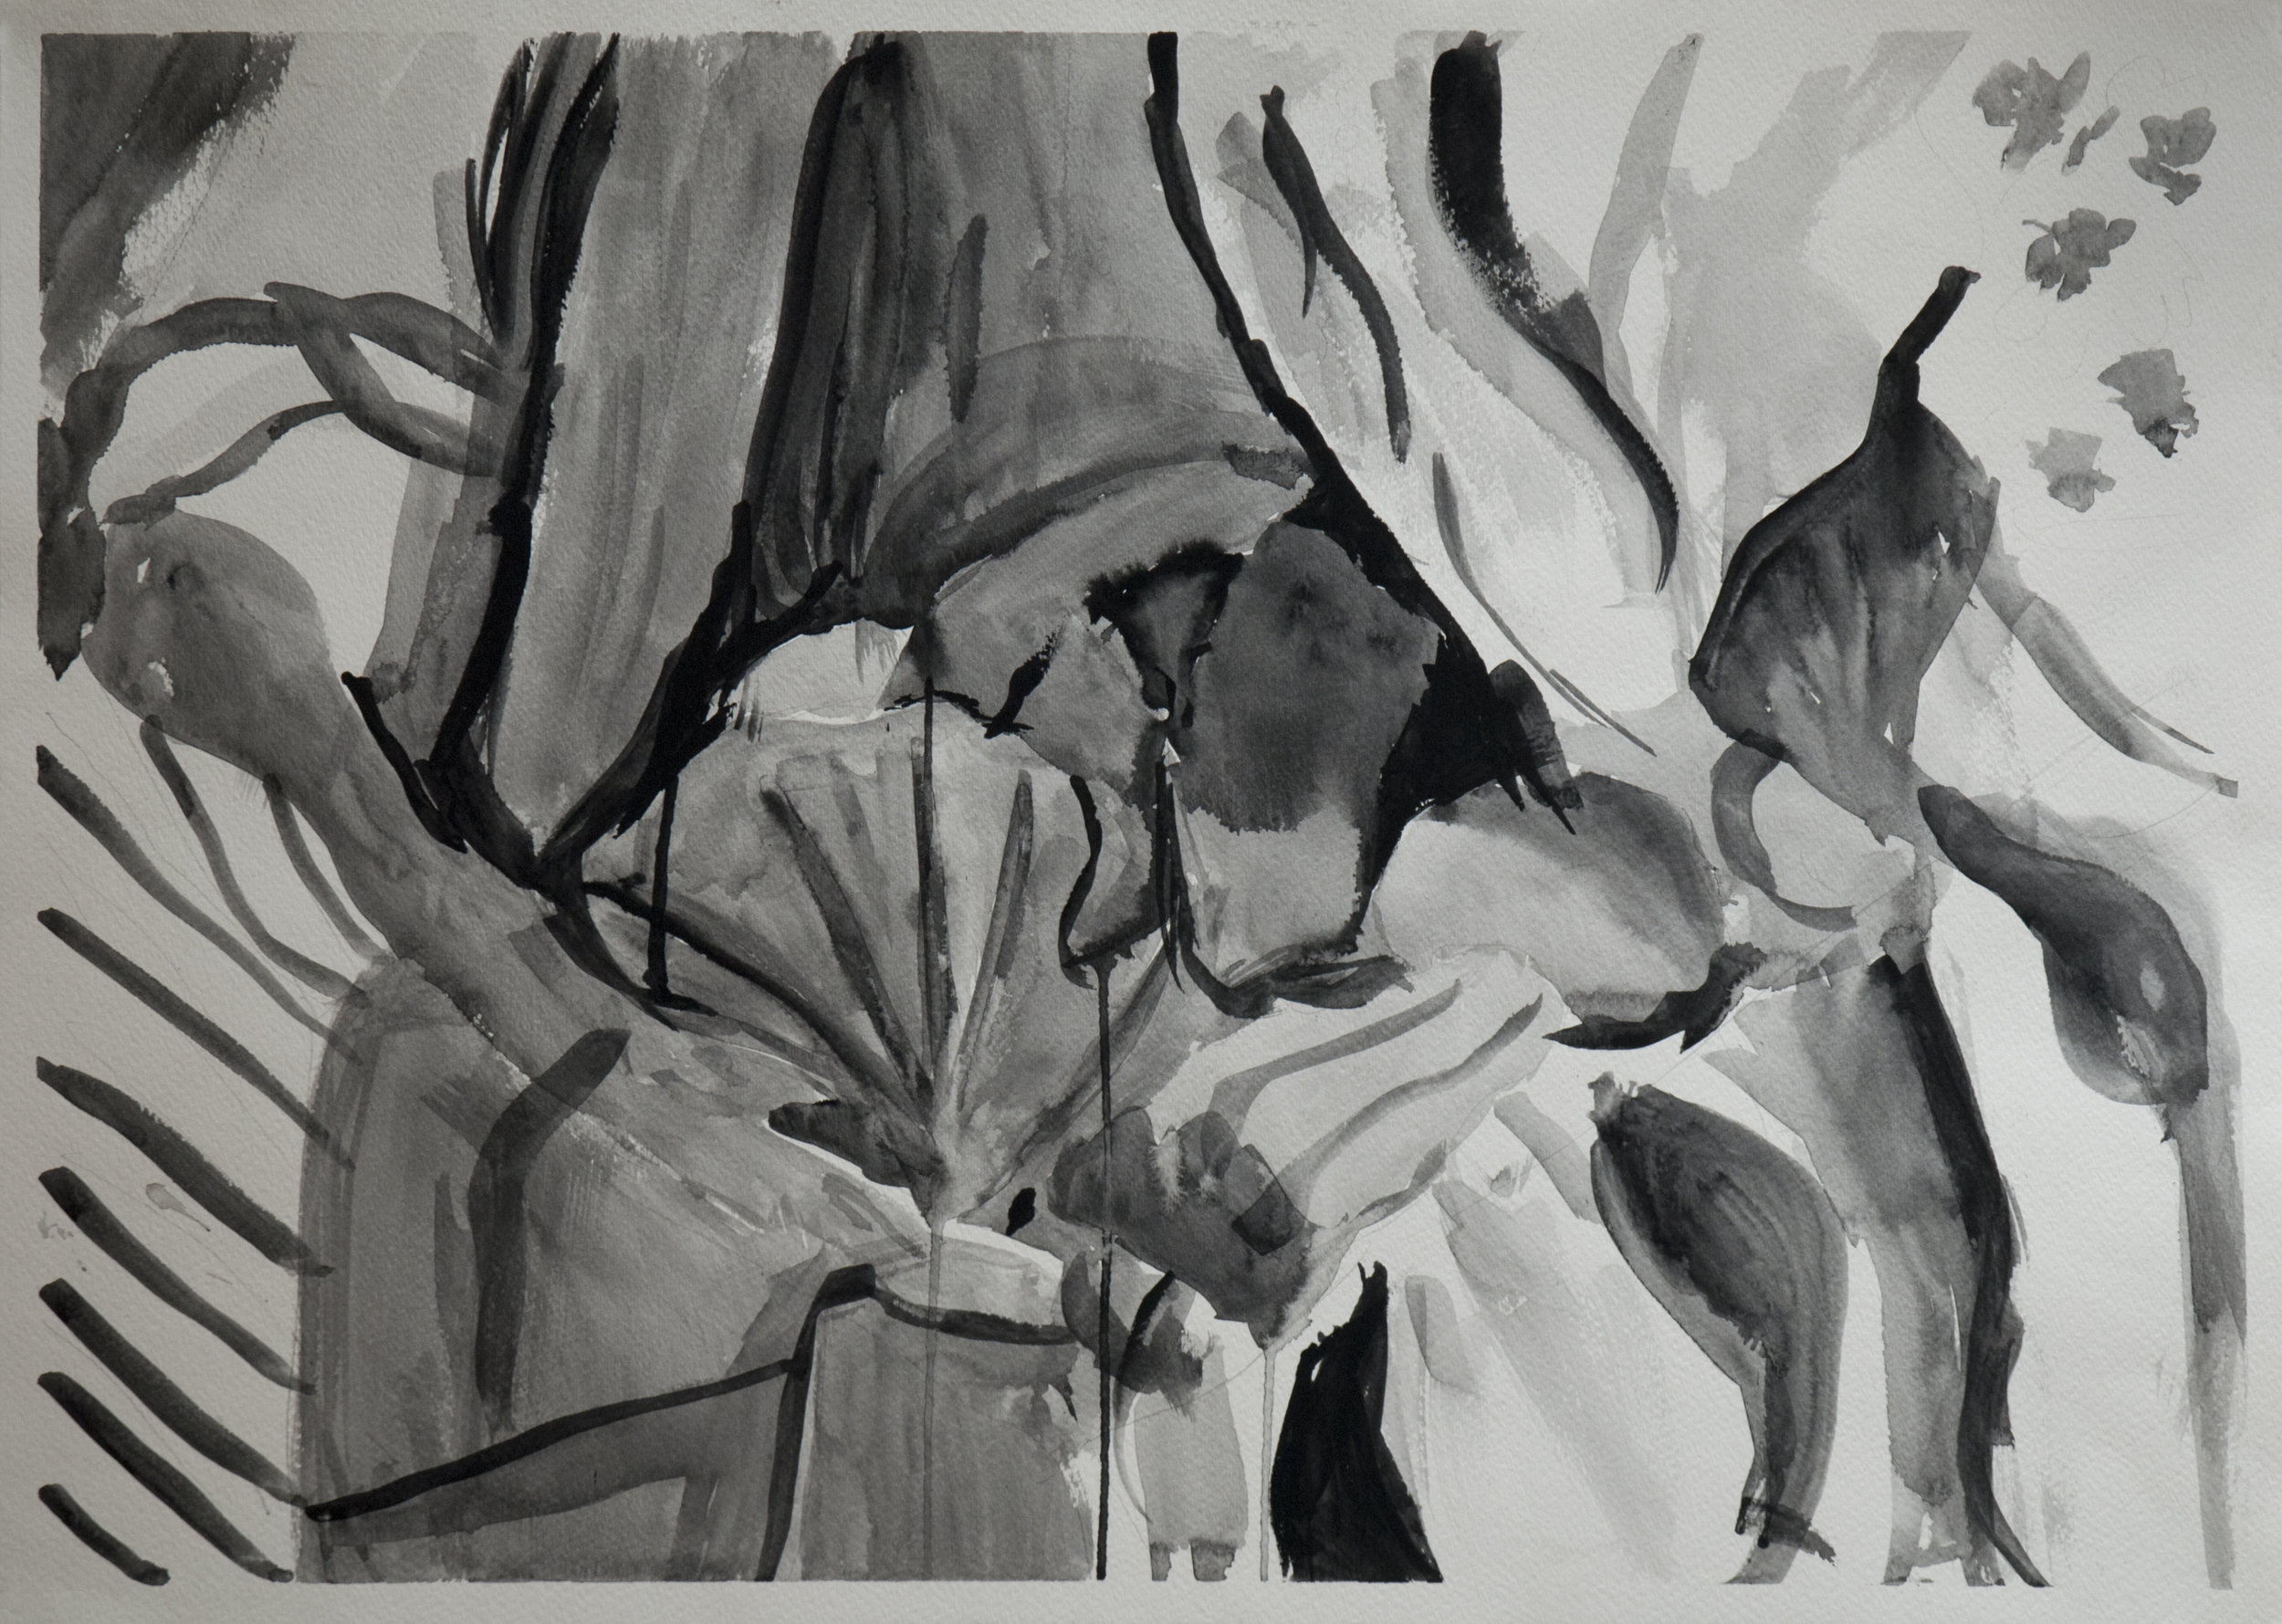 "(Study for) Still Life with Shell / 22"" tall x 30"" wide, gouache on paper"